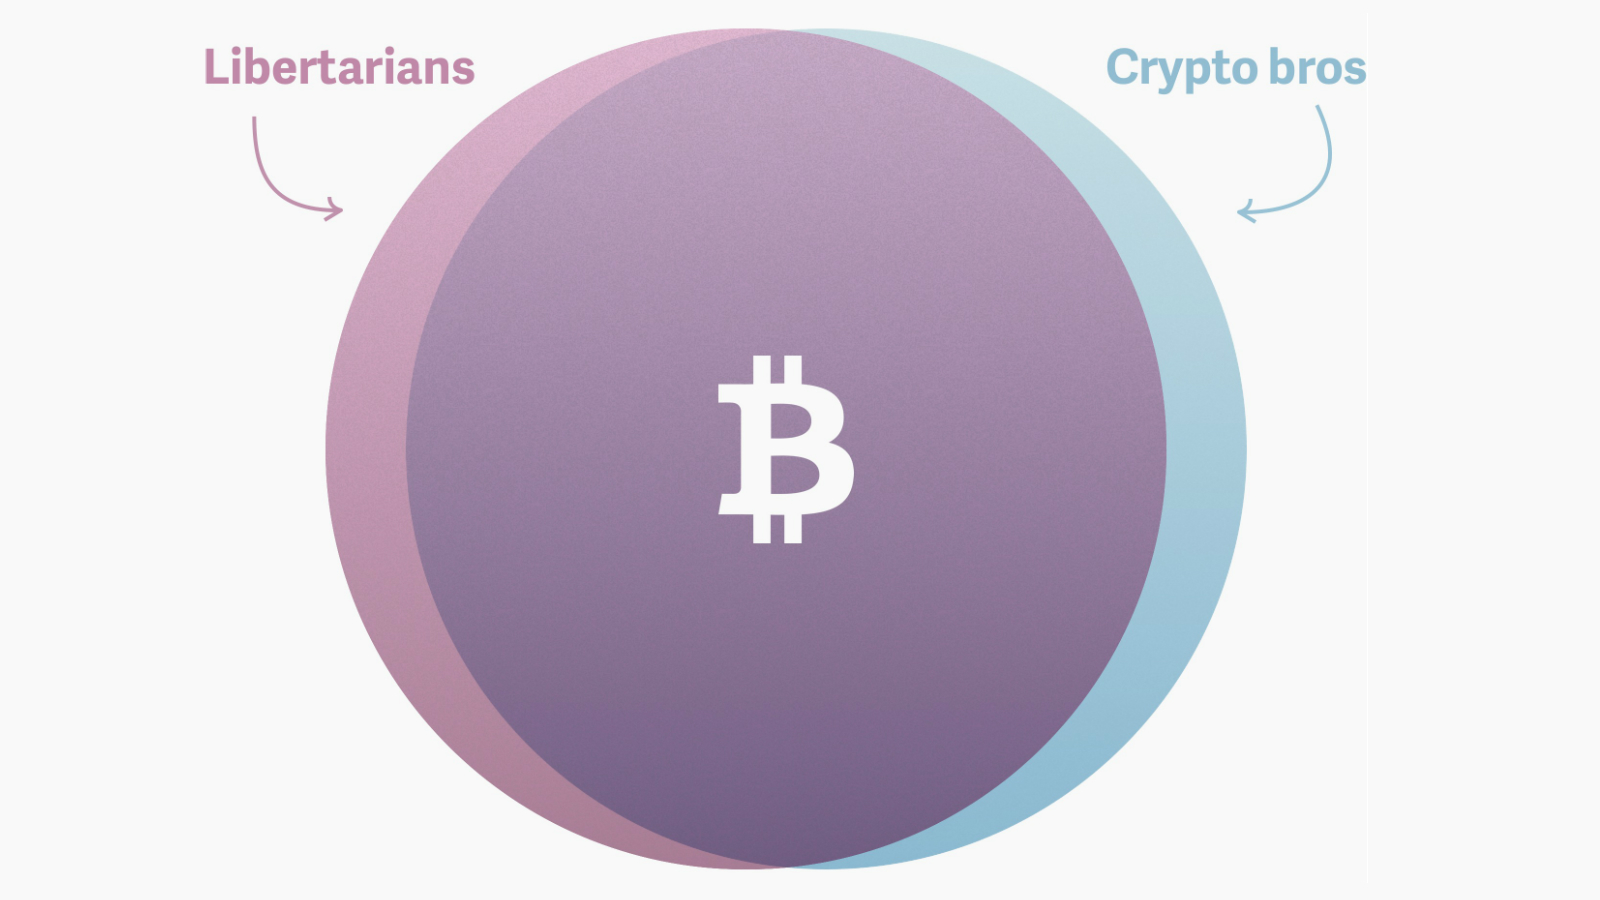 Cryptocurrency as means of payment